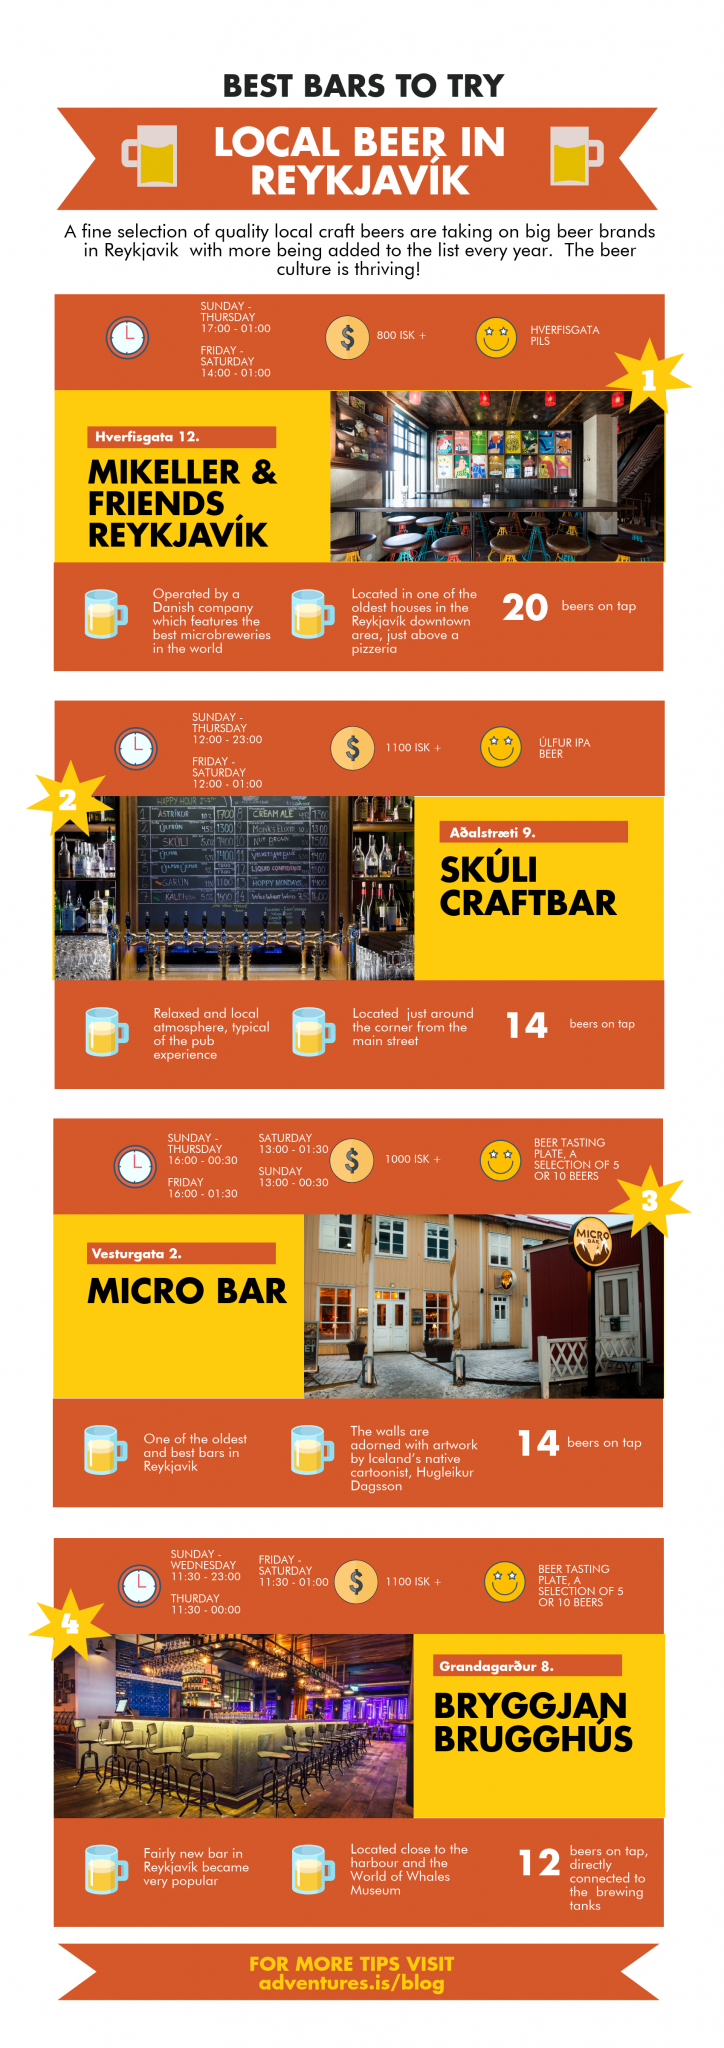 Best bars in Reykjavik infographic